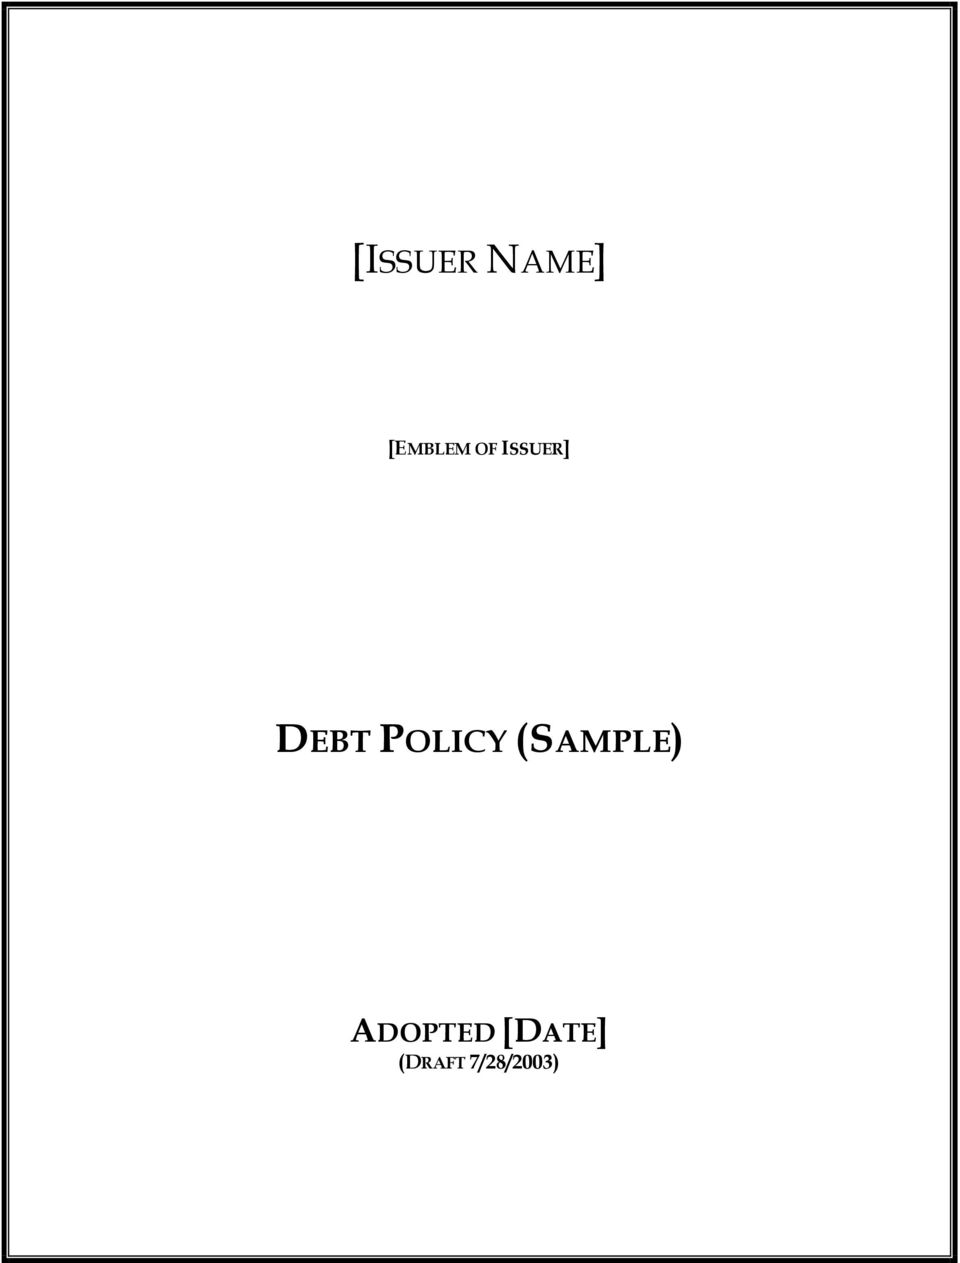 POLICY (SAMPLE)